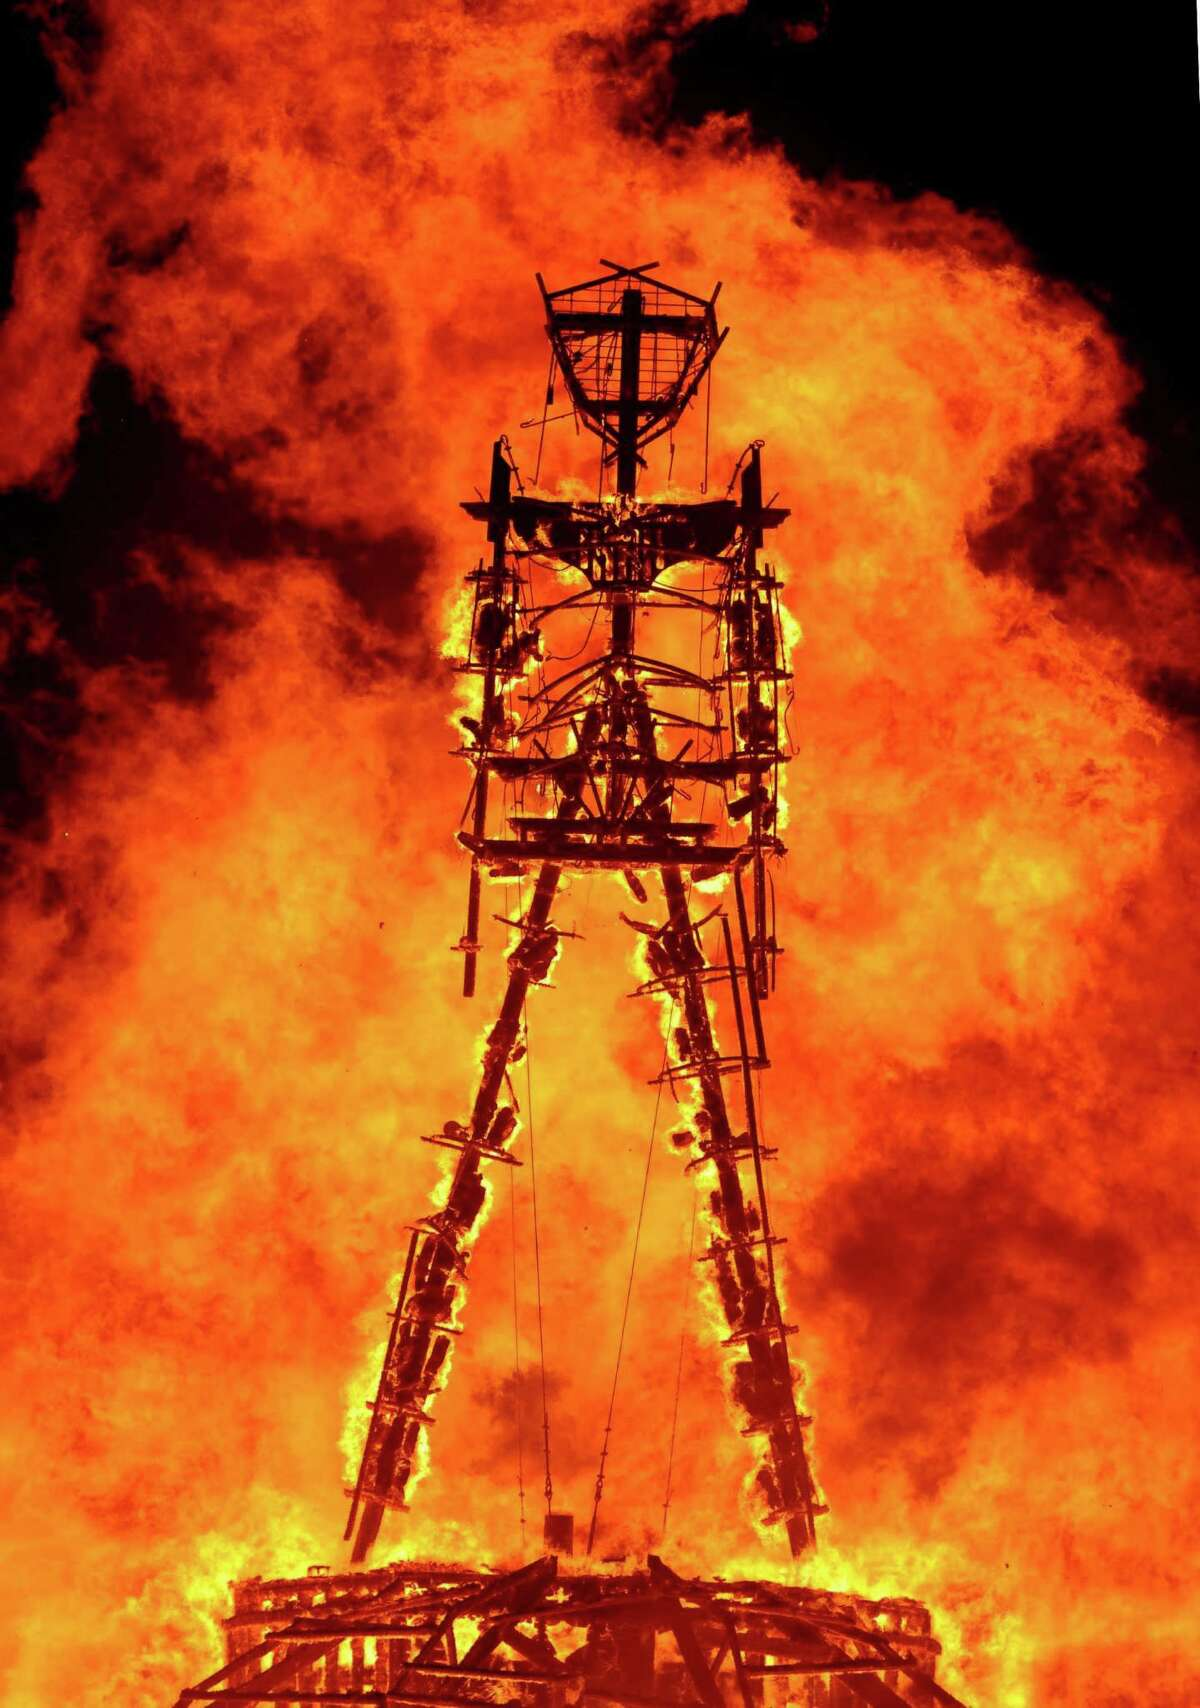 """The """"Man"""" burns on the Black Rock Desert at Burning Man near Gerlach, Nev. on August 31, 2013.U.S. Bureau of Land Management spokesman Mark Turney said Saturday more than 61,000 people have turned out so far for the weekend Burning Man outdoor art and music festival in the Black Rock Desert of northern Nevada. (AP Photo/Reno Gazette-Journal, Andy Barron)"""